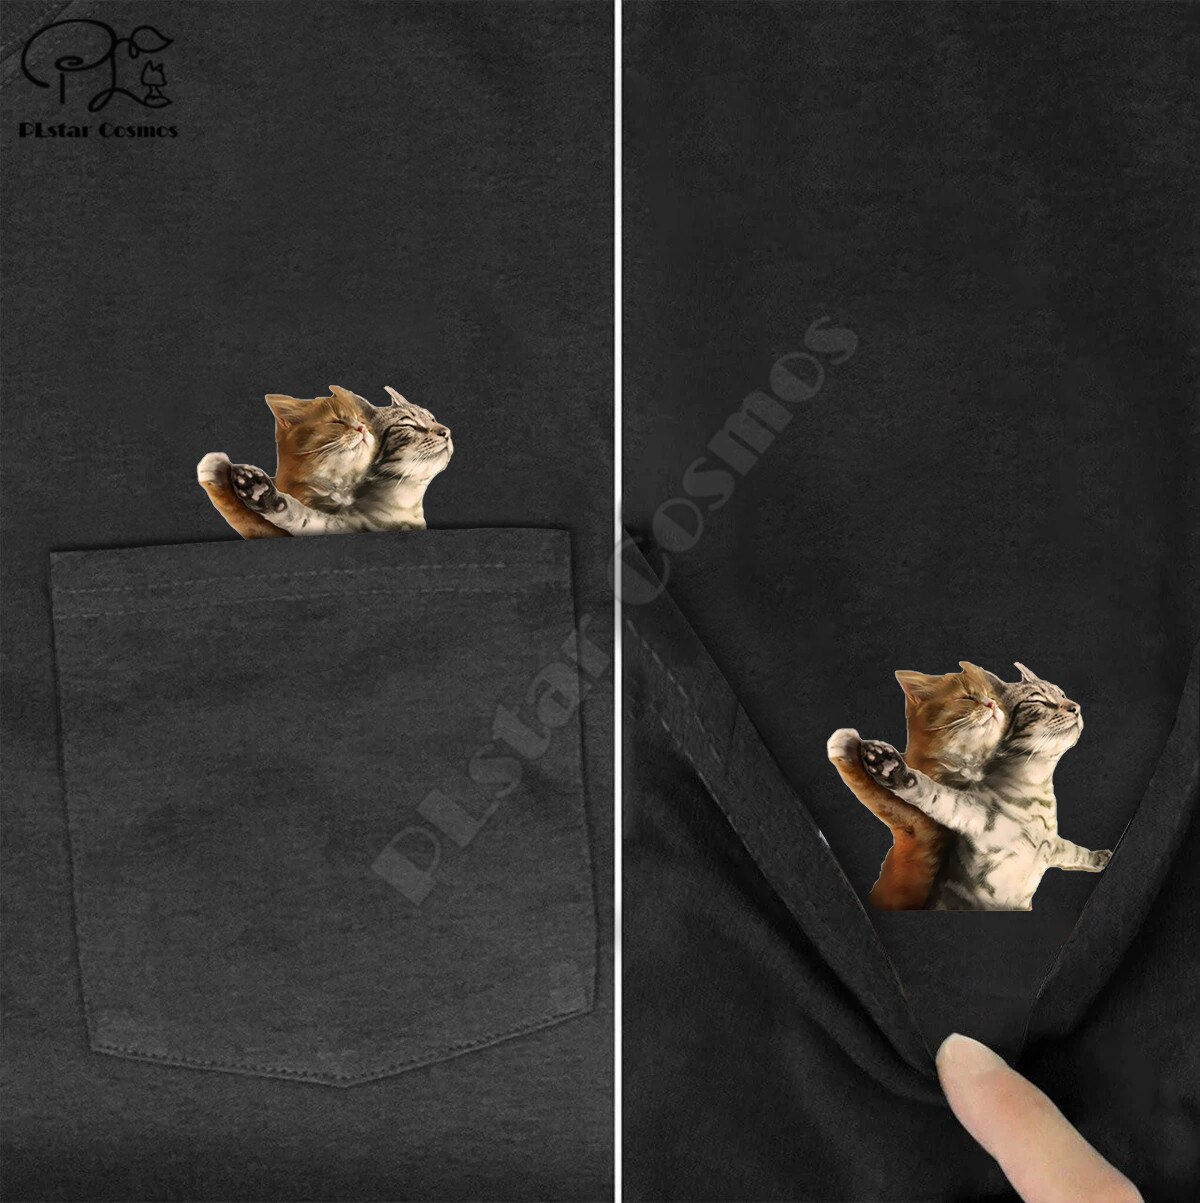 t-shirt-fashion-summer-pocket-titanic-cat-printed-t-shirt-men's-for-women-shirts-hip-hop-tops-funny-cotton-tees-drop-shipping